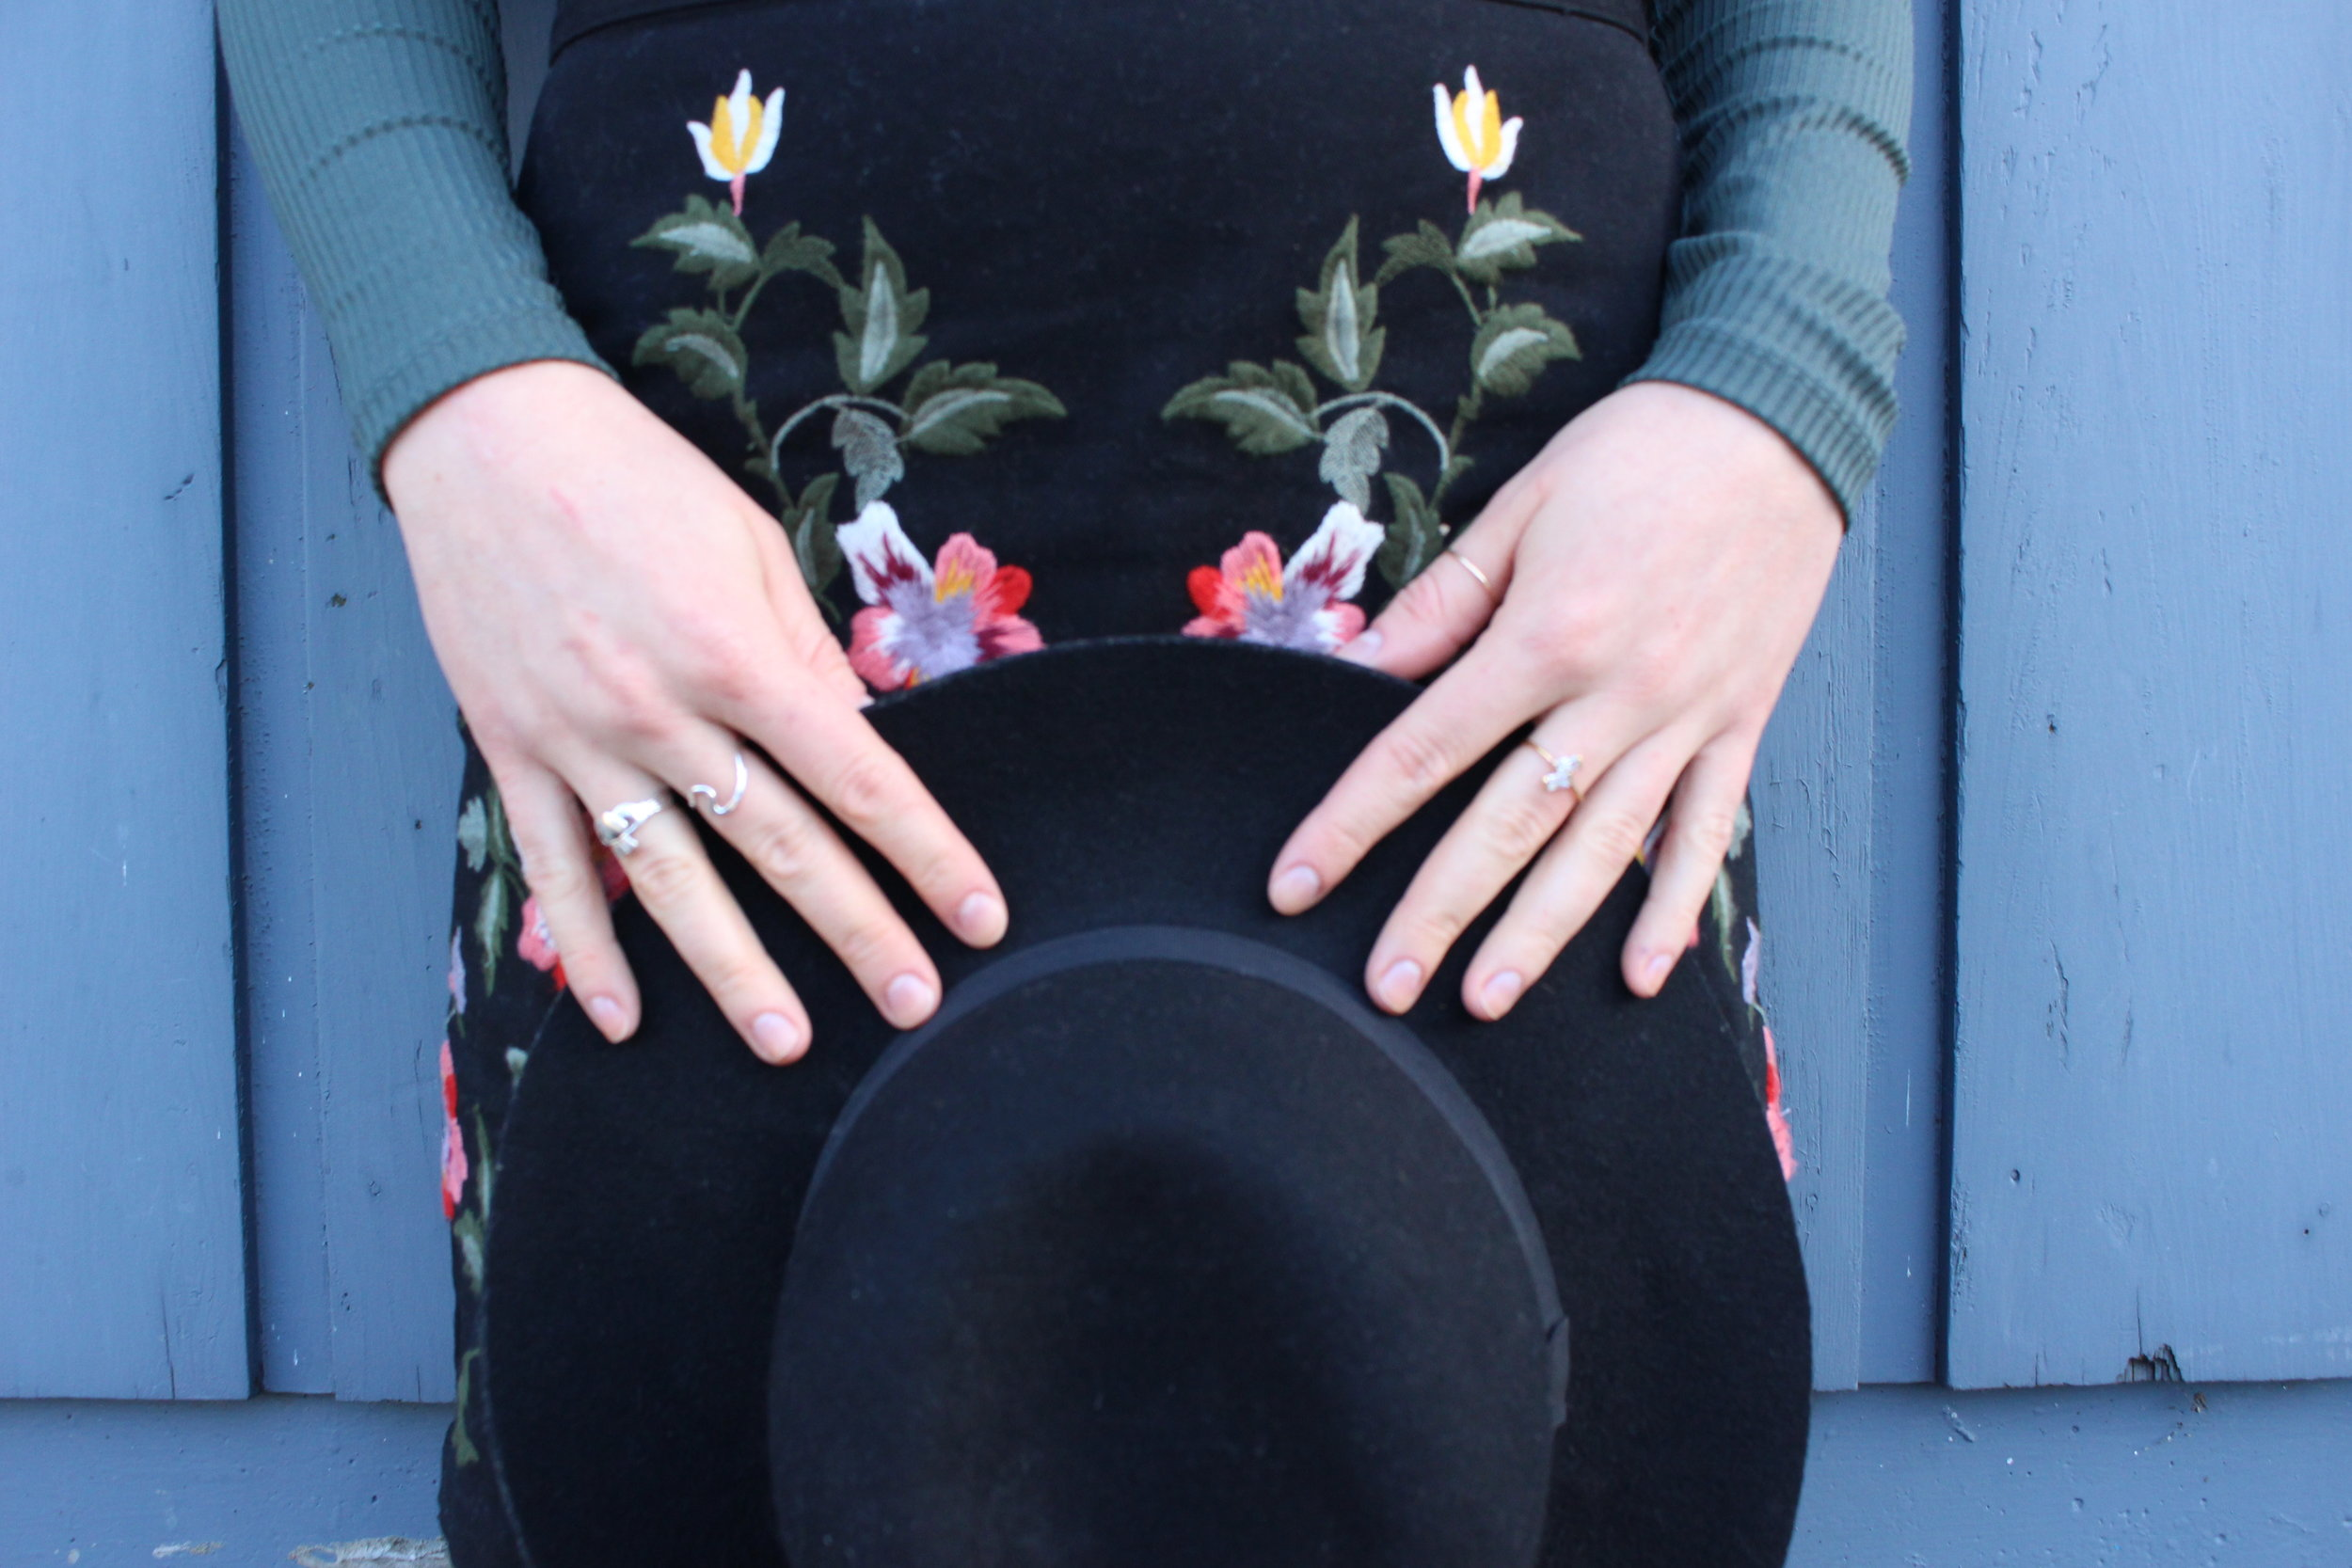 Details: Claddagh ring,    Joleen Sohier    wave ring,    Little Gold    ring, Etsy ring, Black Wool Hat